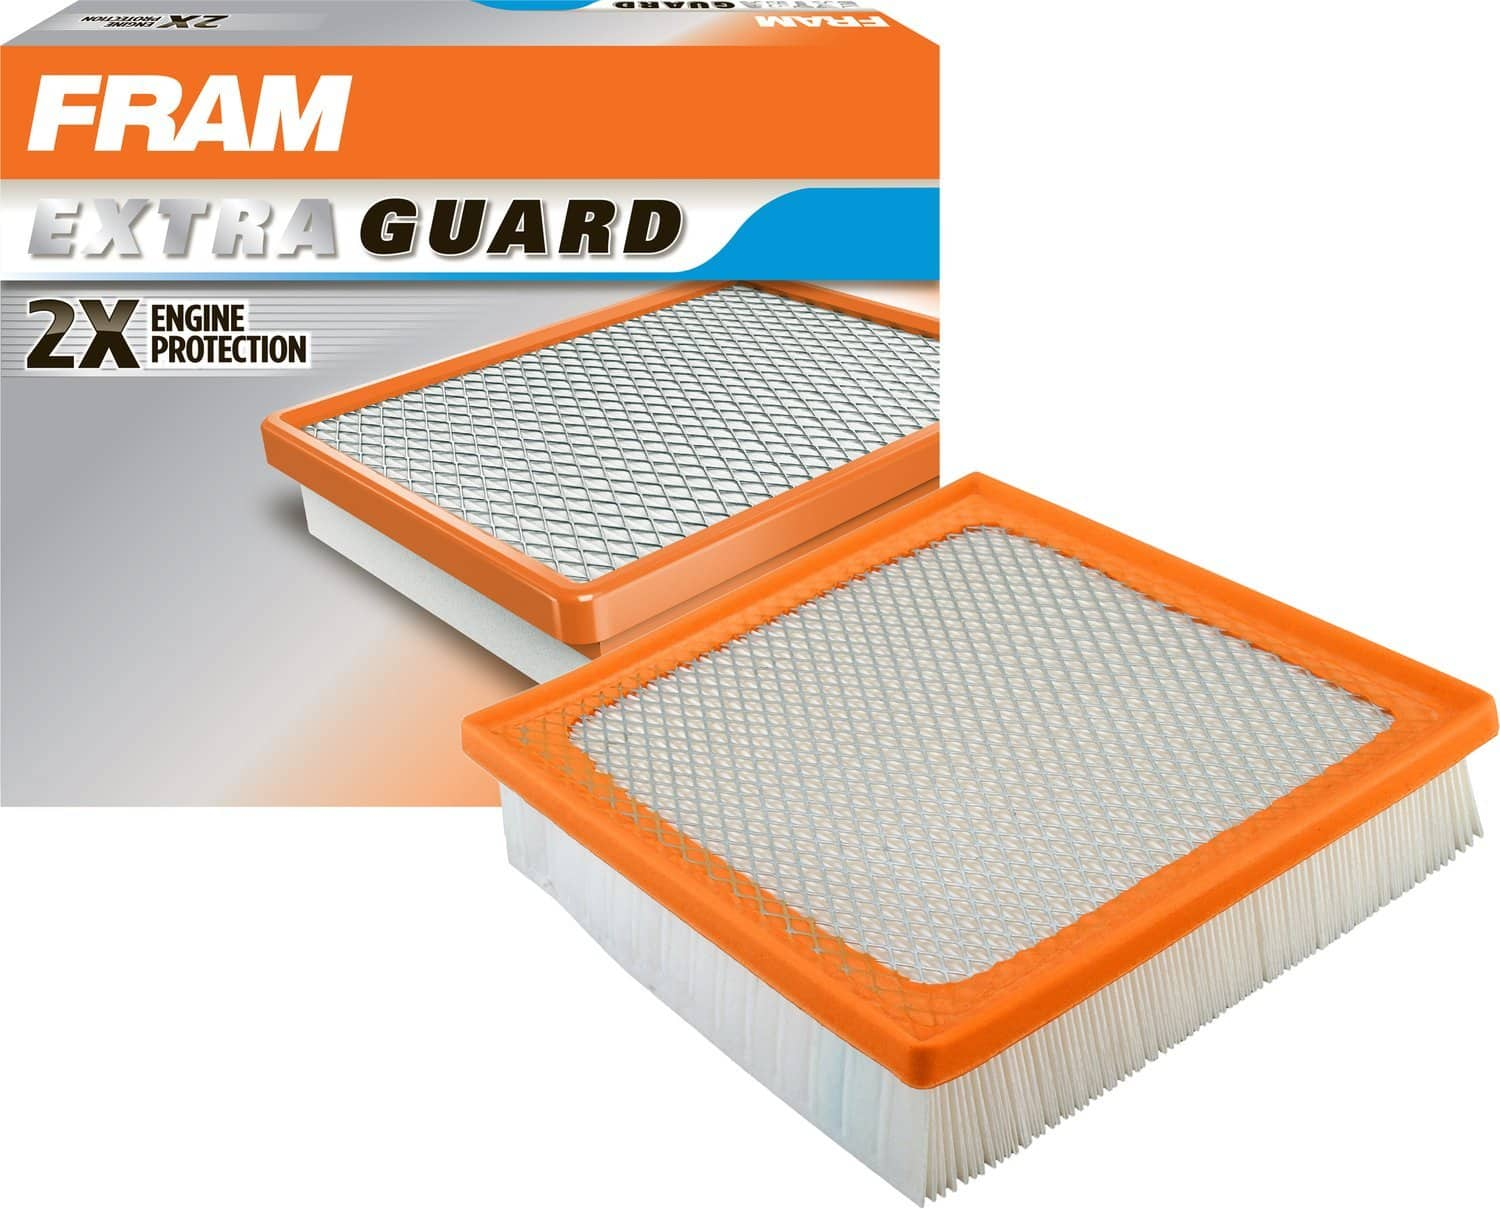 FRAM Air AND Oil Filters - $4.00 mail-in Rebate with qualifying purchases one each...see links to deals